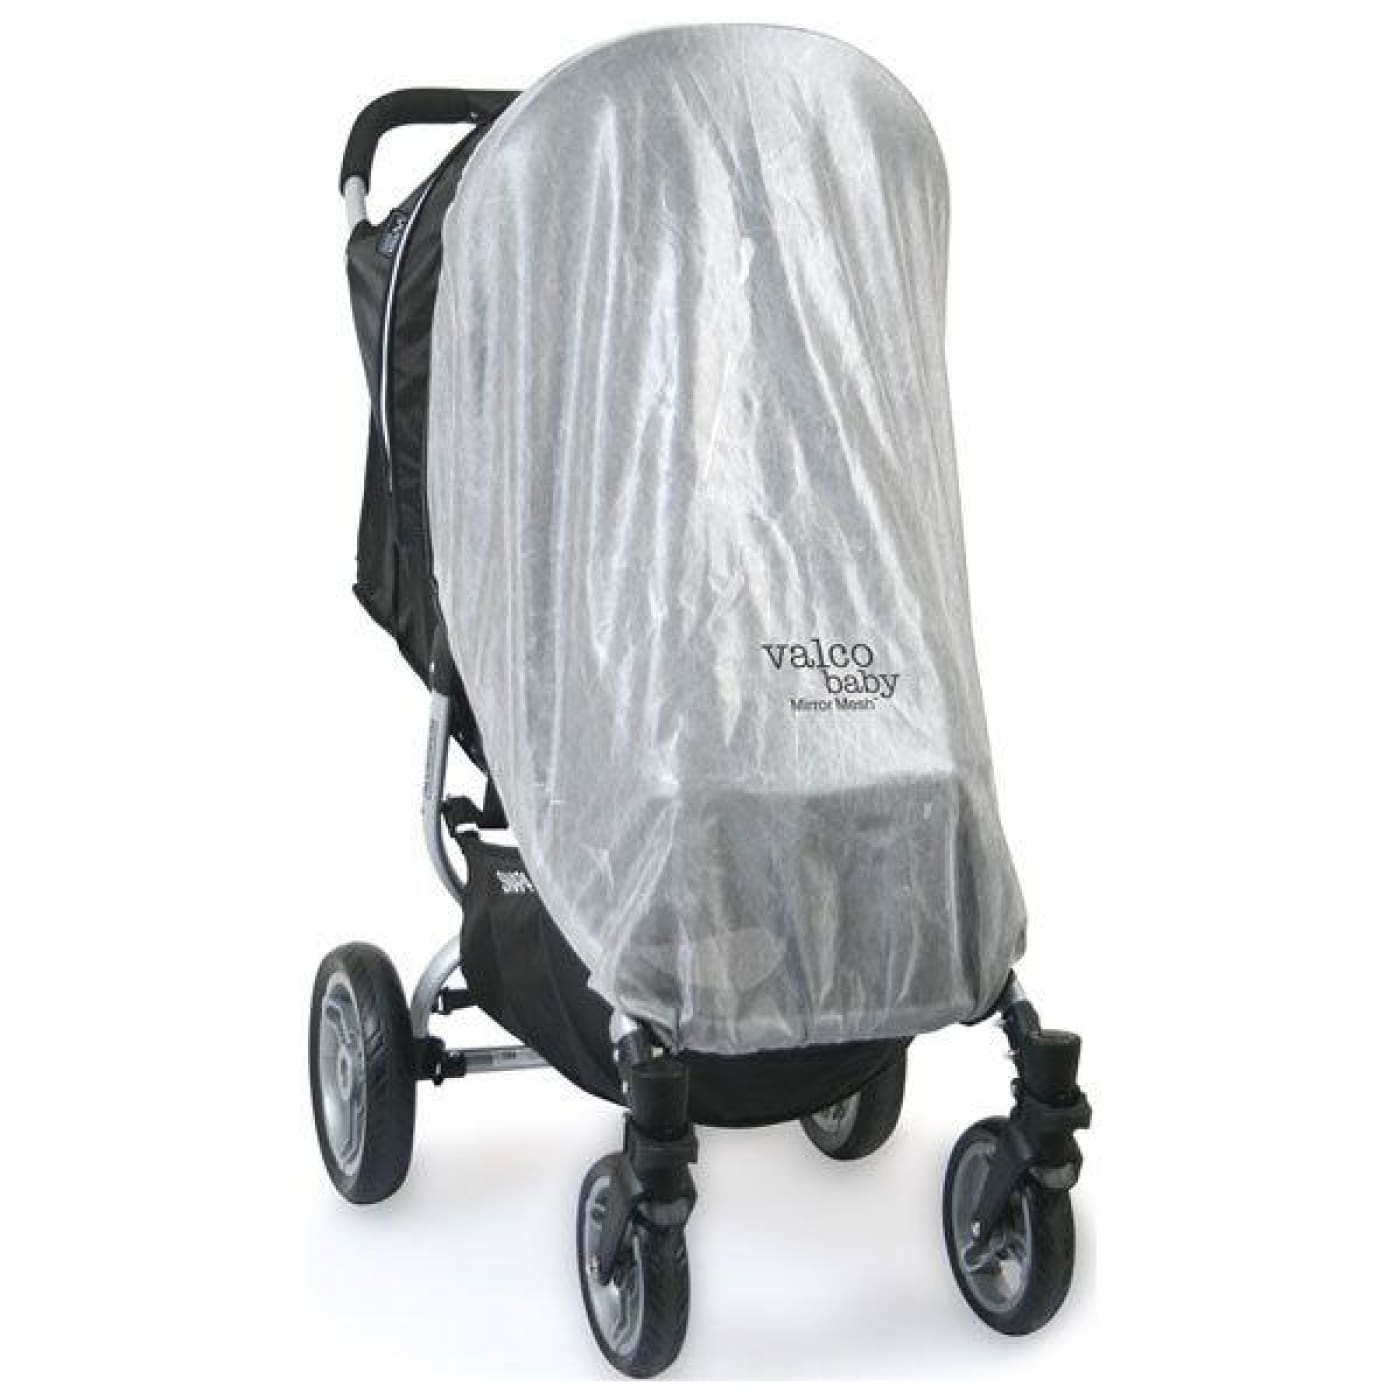 Valco Baby Mirror Mesh for Snap and Snap 4 - PRAMS & STROLLERS - SUN COVERS/WEATHER SHIELDS